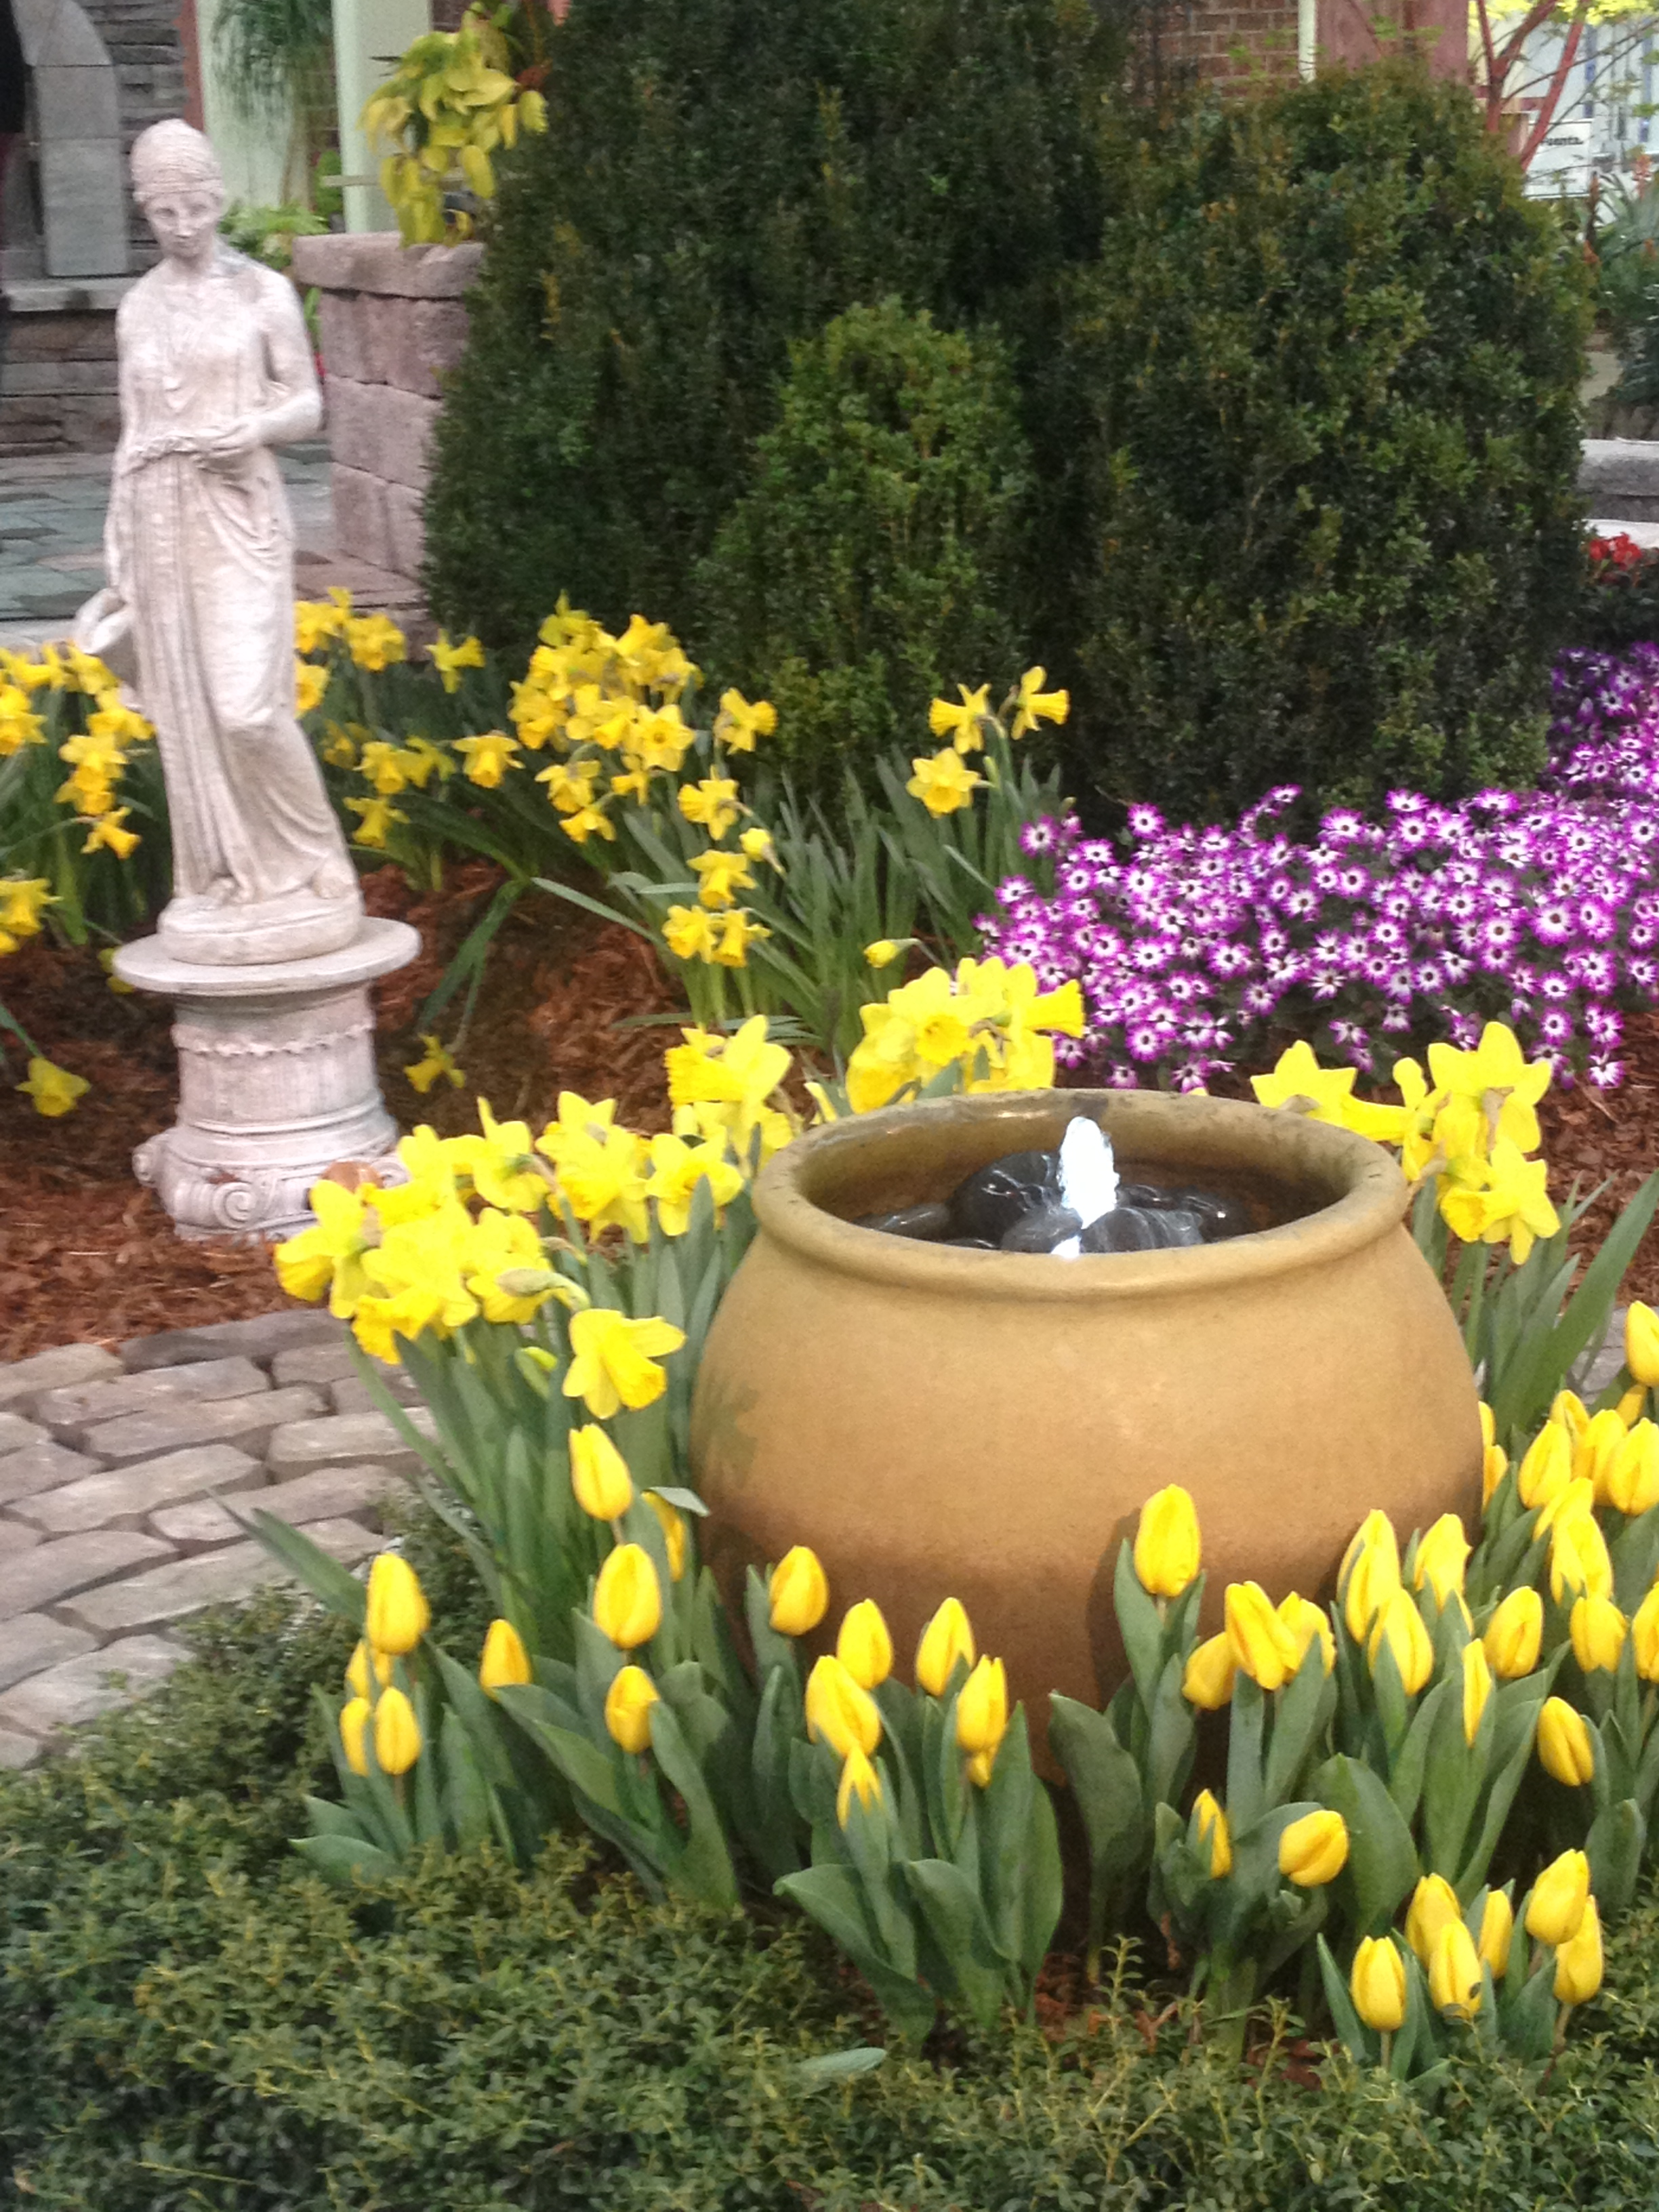 The Annual Nashville Lawn And Garden Show Is What Signals The Arrival Of  Spring For Many Middle Tennessee Gardeners. This Yearu0027s Show Will Be March  1 U2013 4 At ...